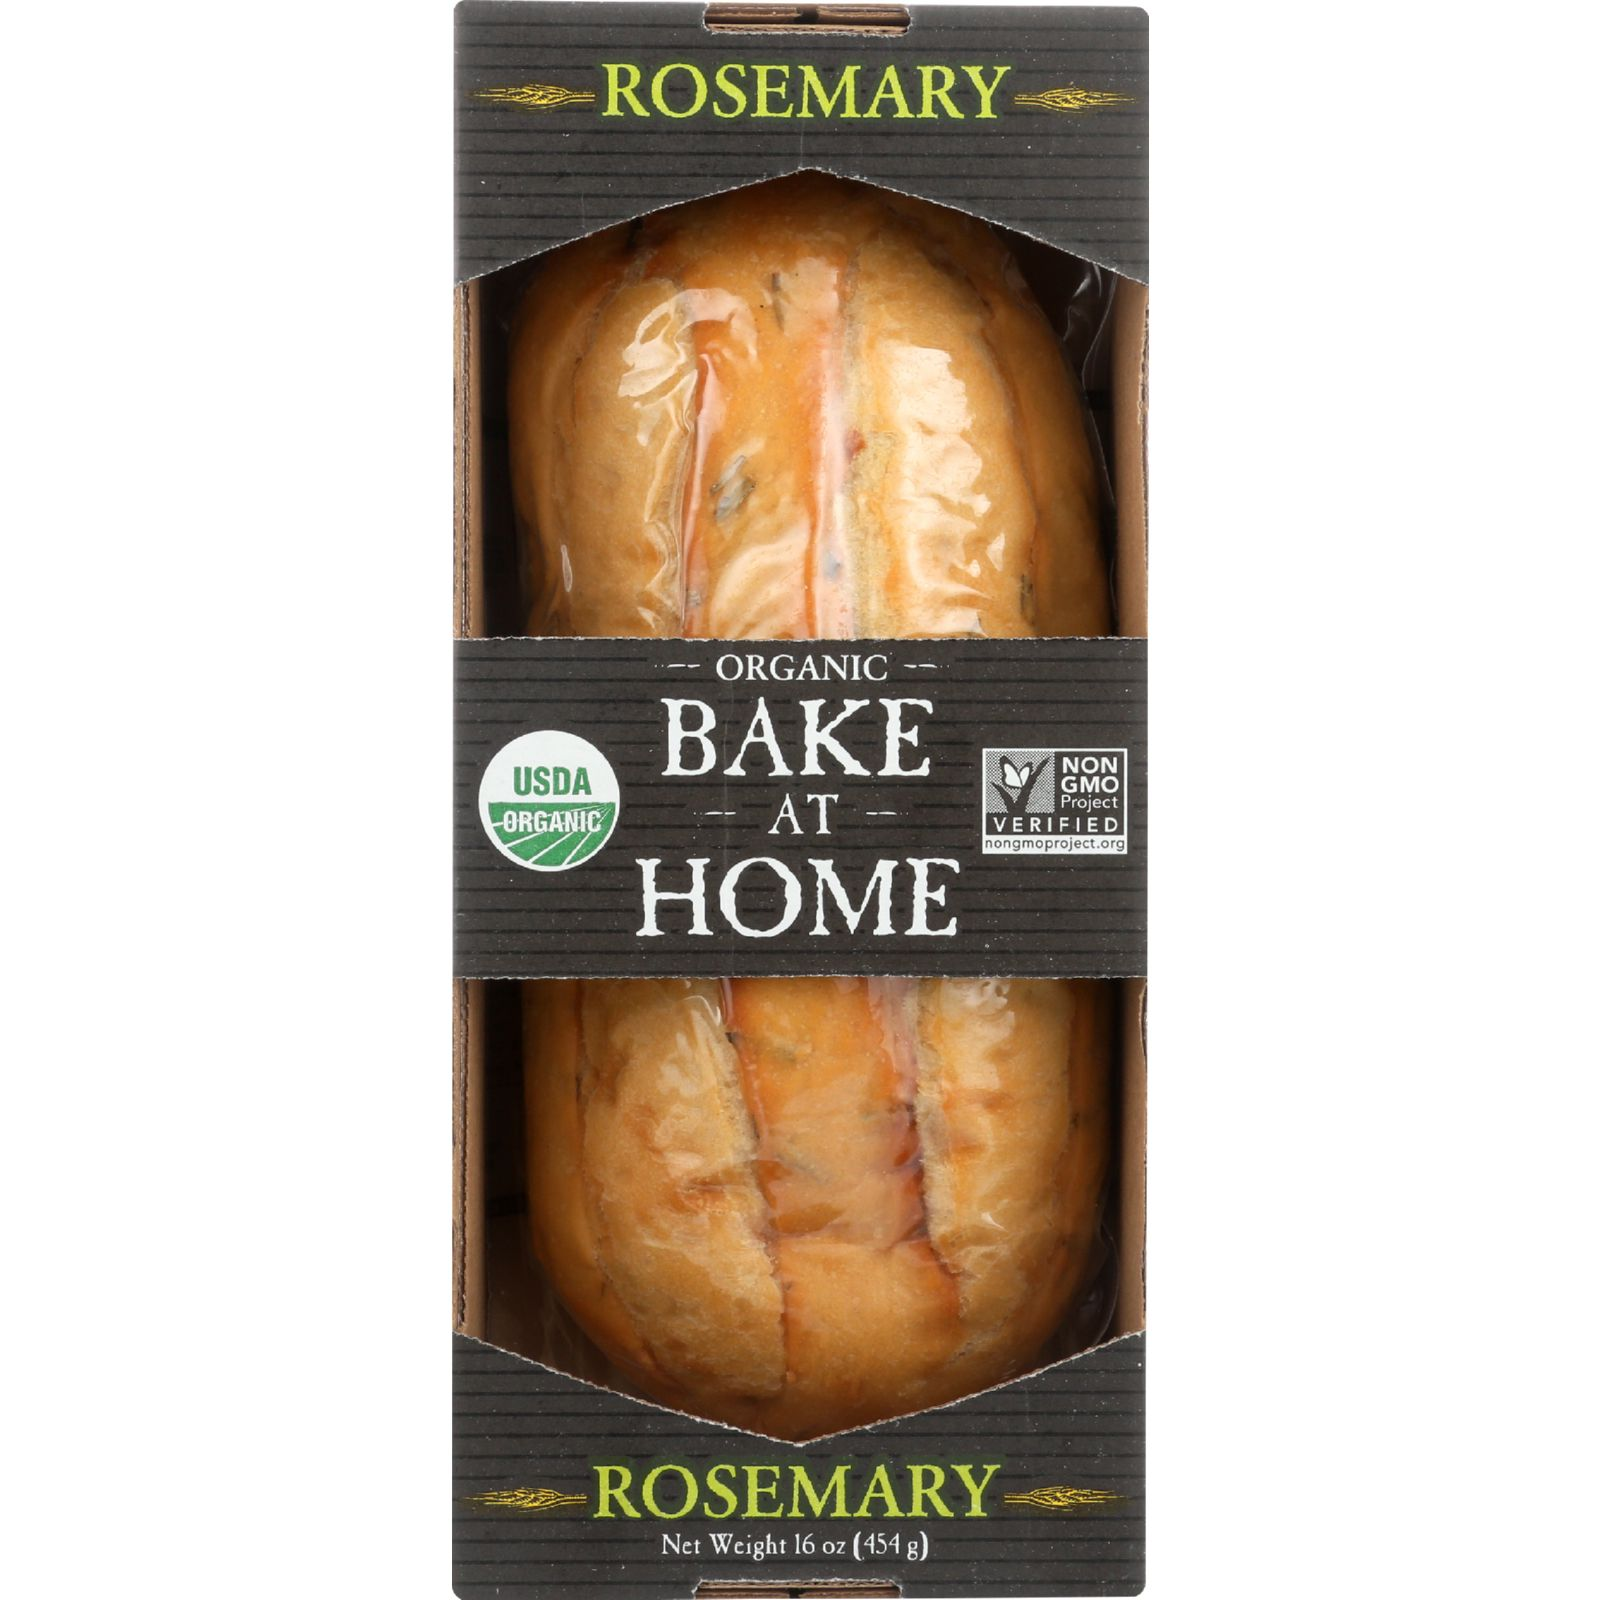 Essential Baking Company Bread - Organic - Bake At Home - Rosemary - 16 Oz - Case Of 12